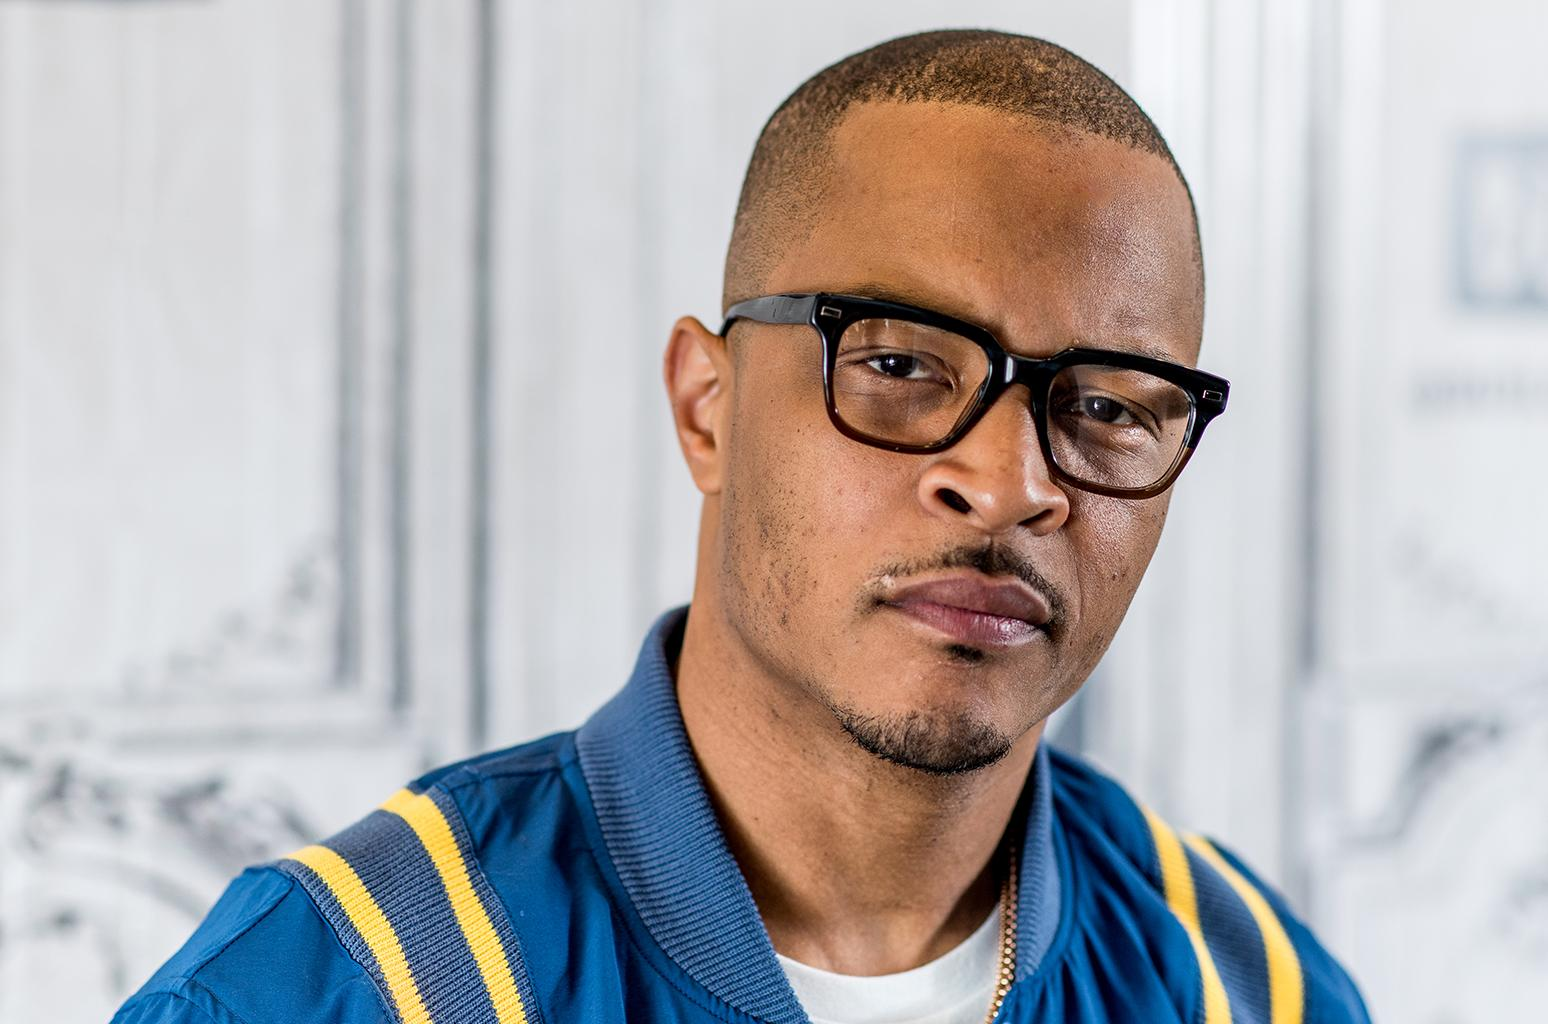 T.I. Posts Cardi B On Social Media And Has Fans Laughing